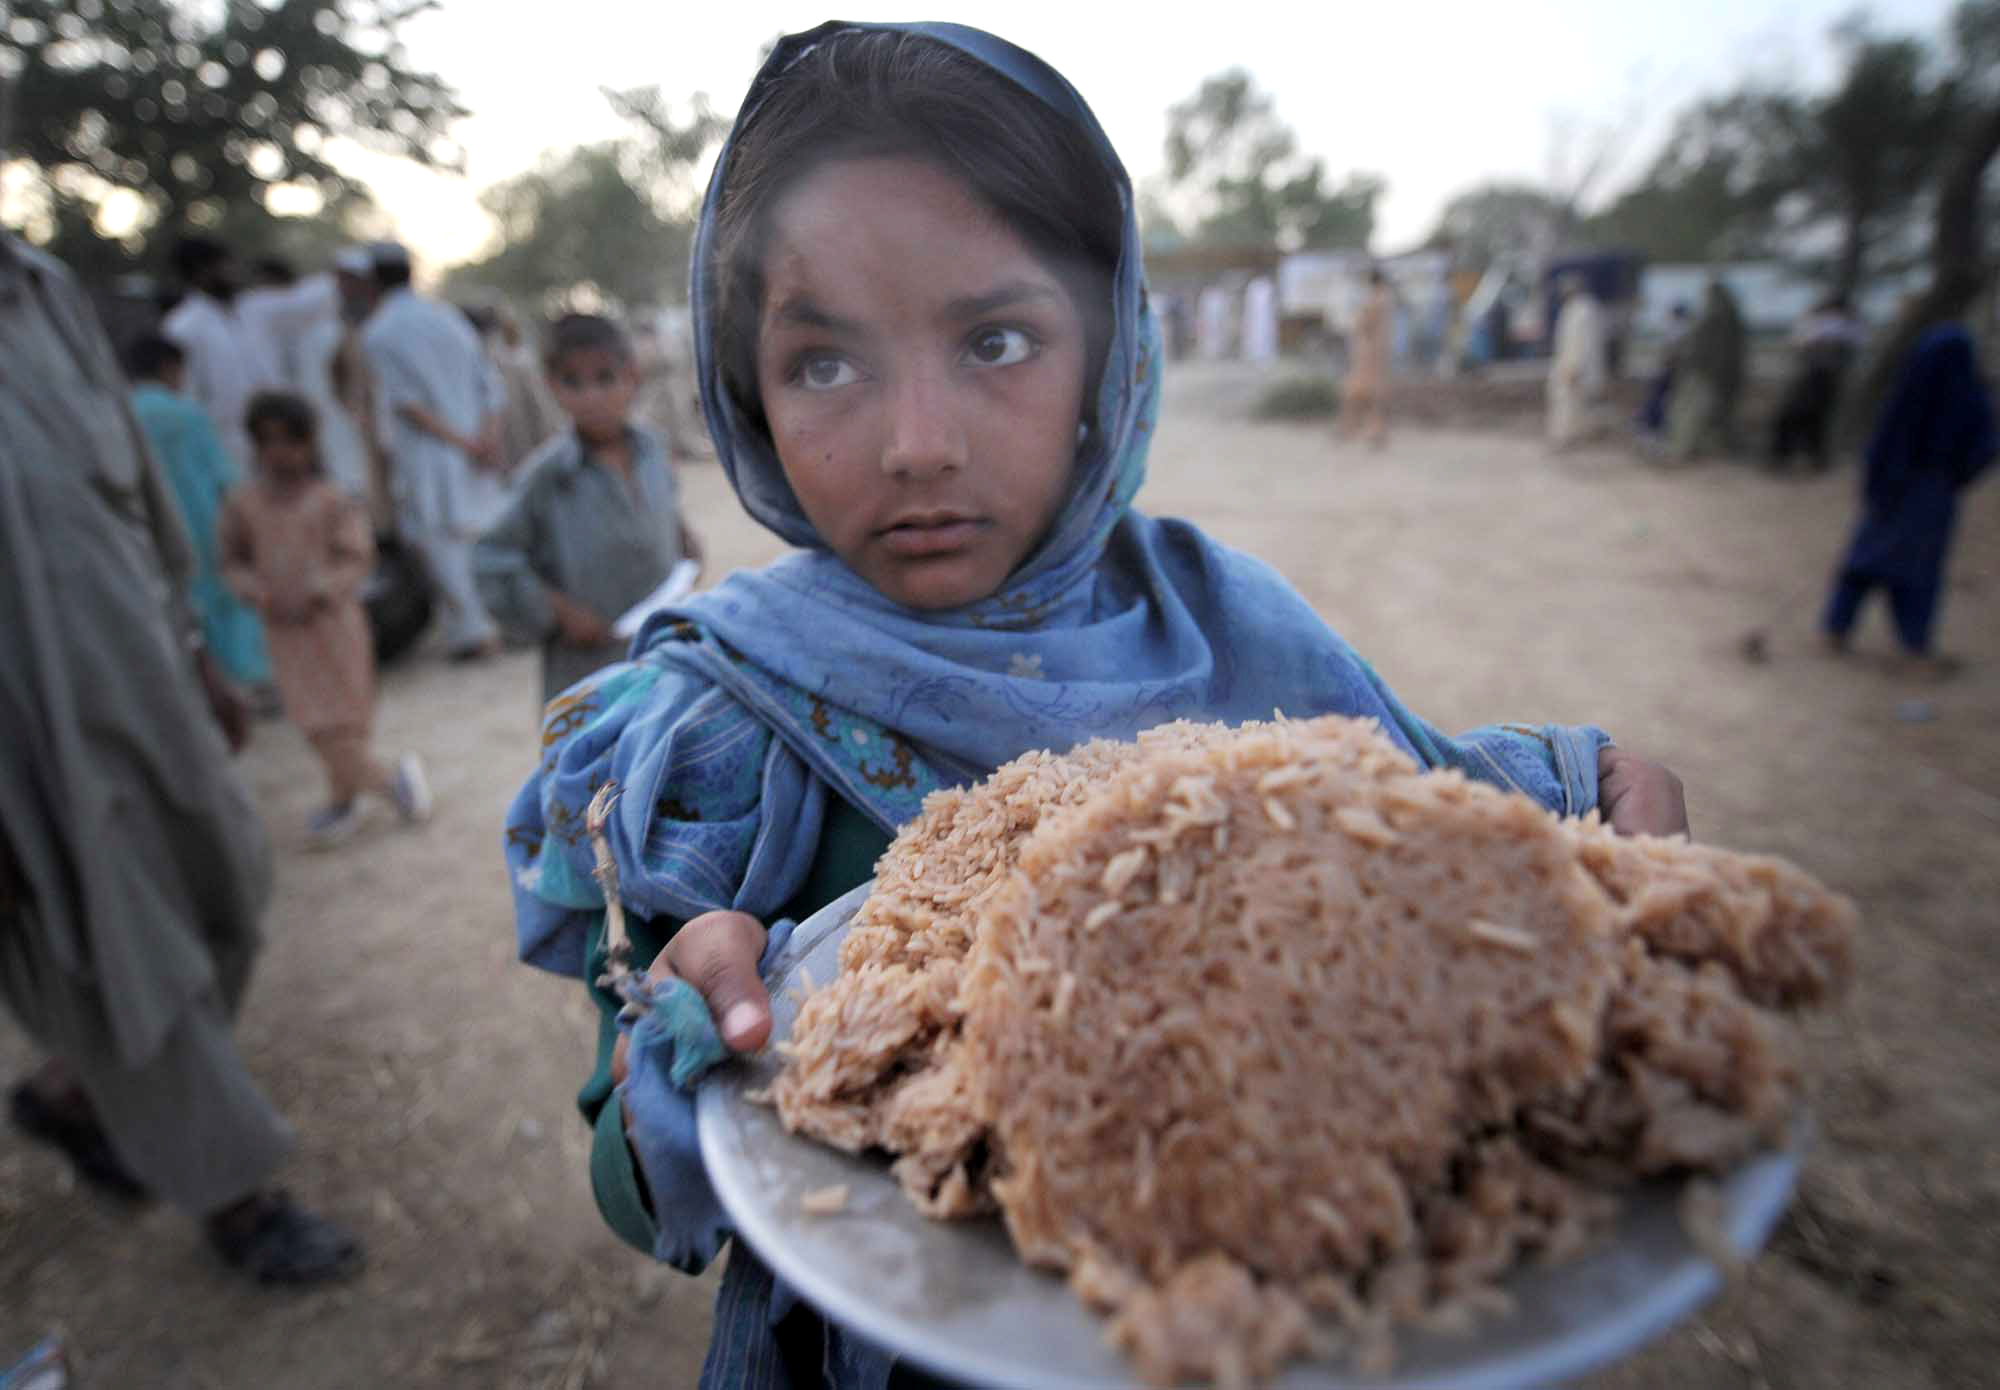 Food scarcity during Ramadan exacerbated by floods threatens thousands of poor people in Pakistan